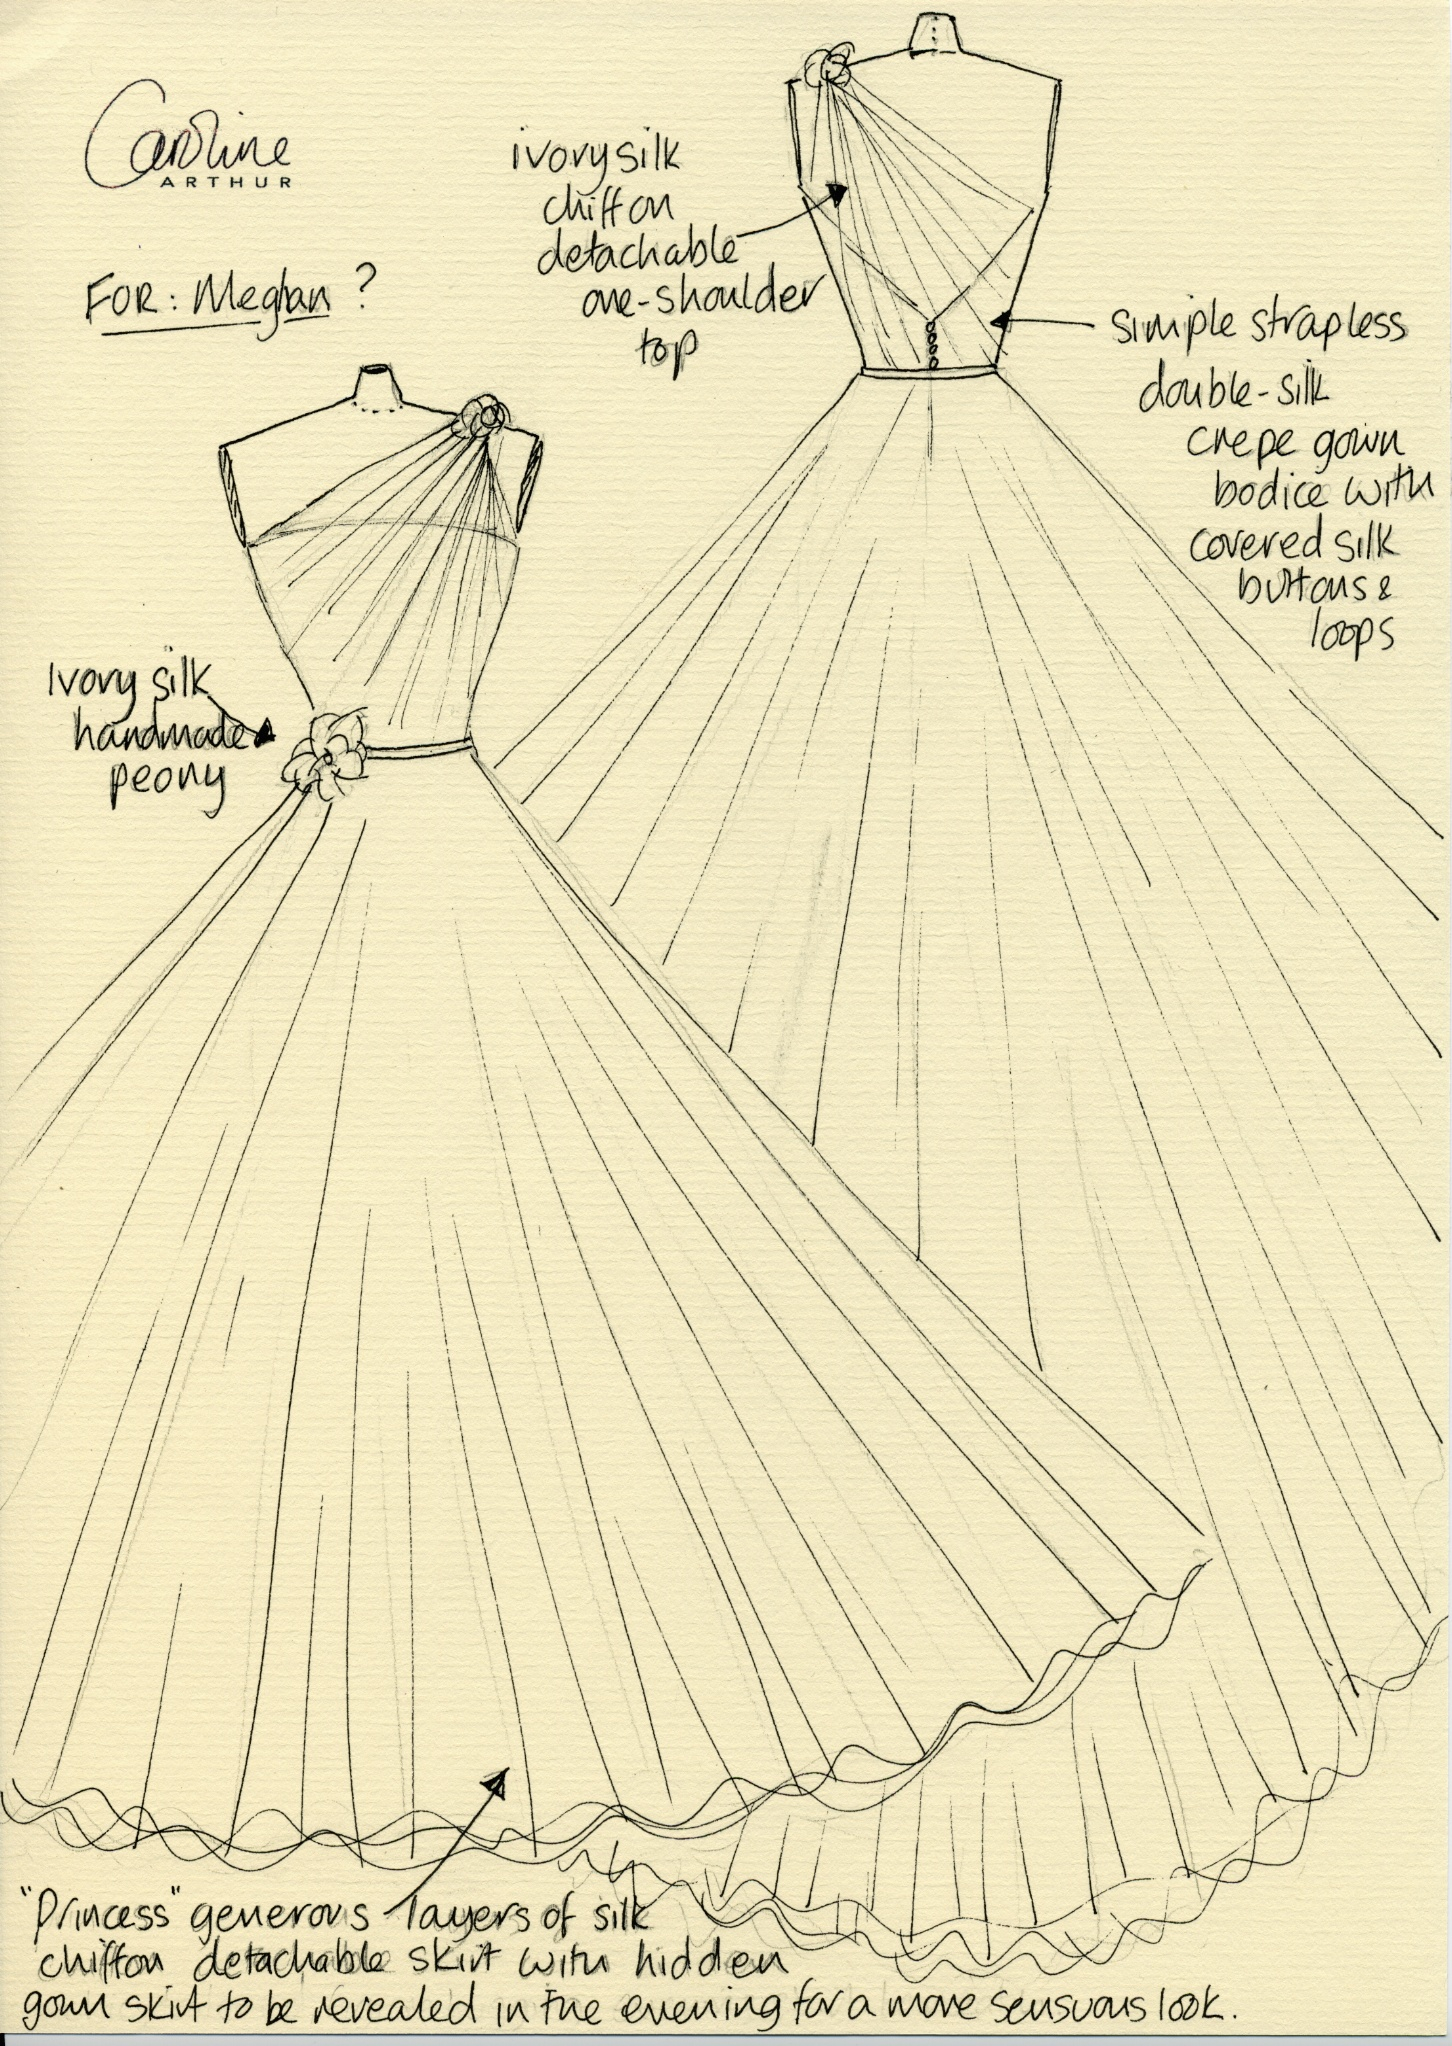 Bridal designer Caroline Arthur's sketch of what she imagines Meghan Markle's wedding dress will look like